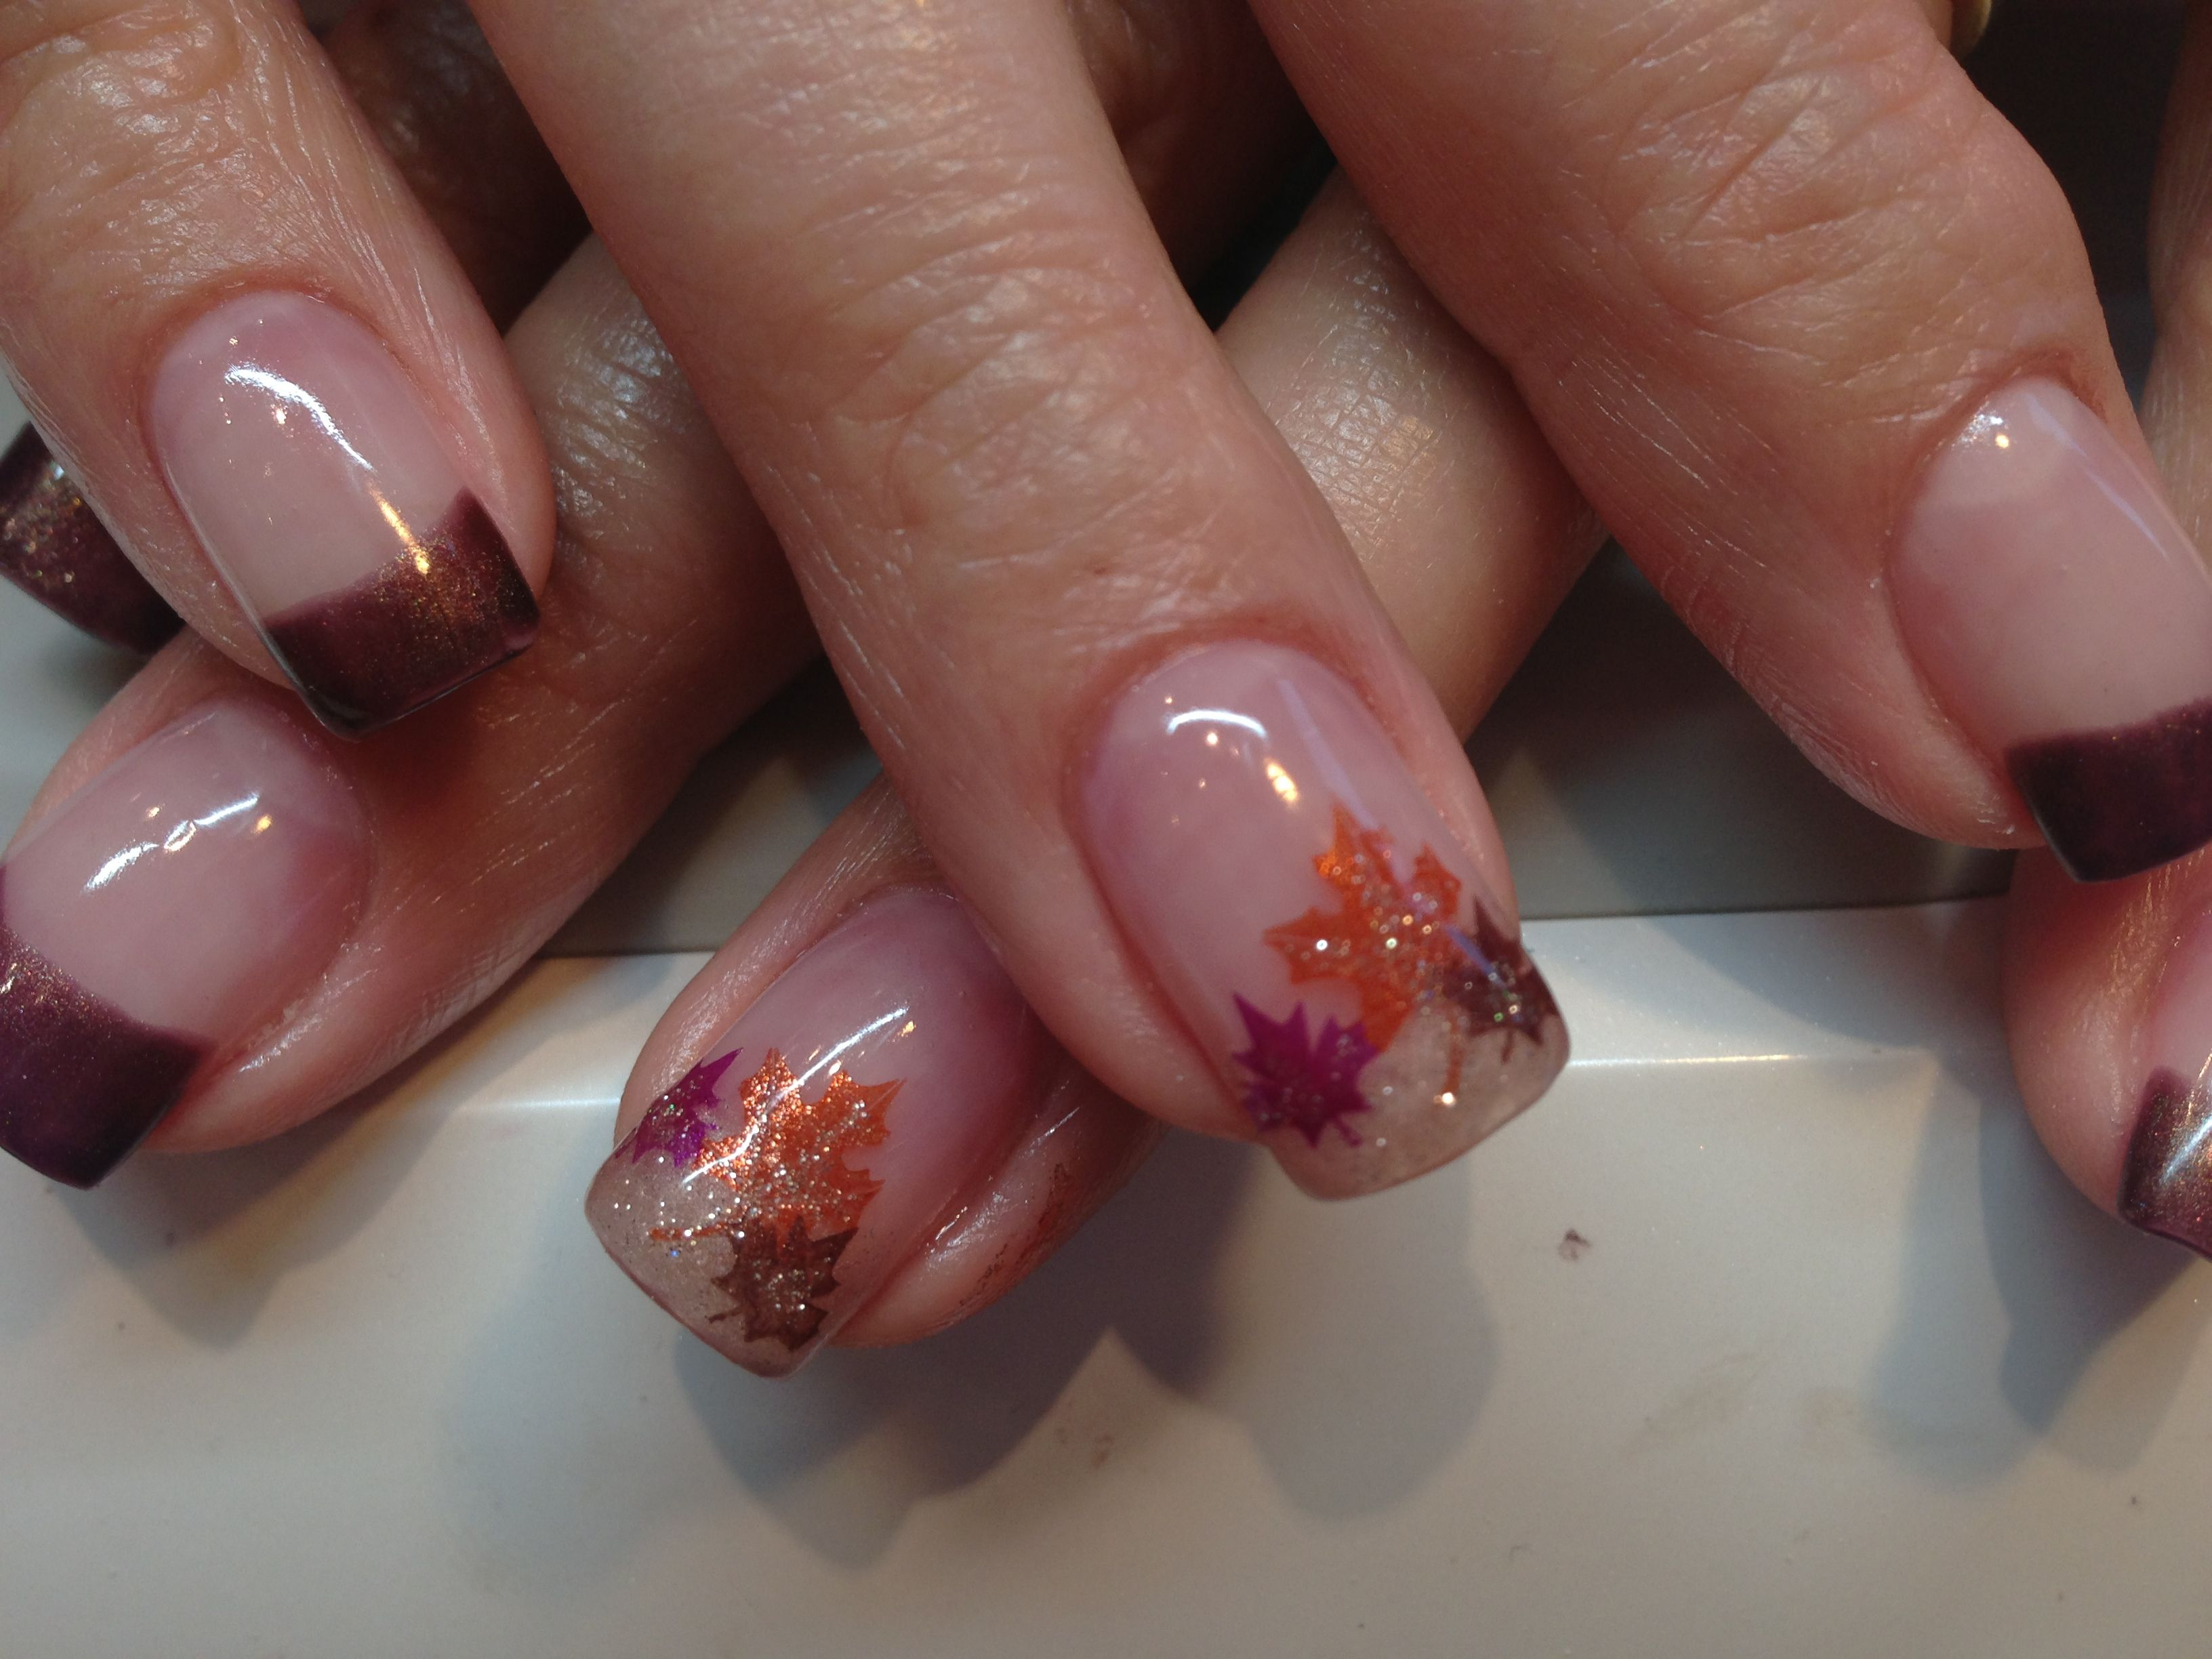 Autumn leaves nail art on a golden french manicure ♡ | Nails and ...